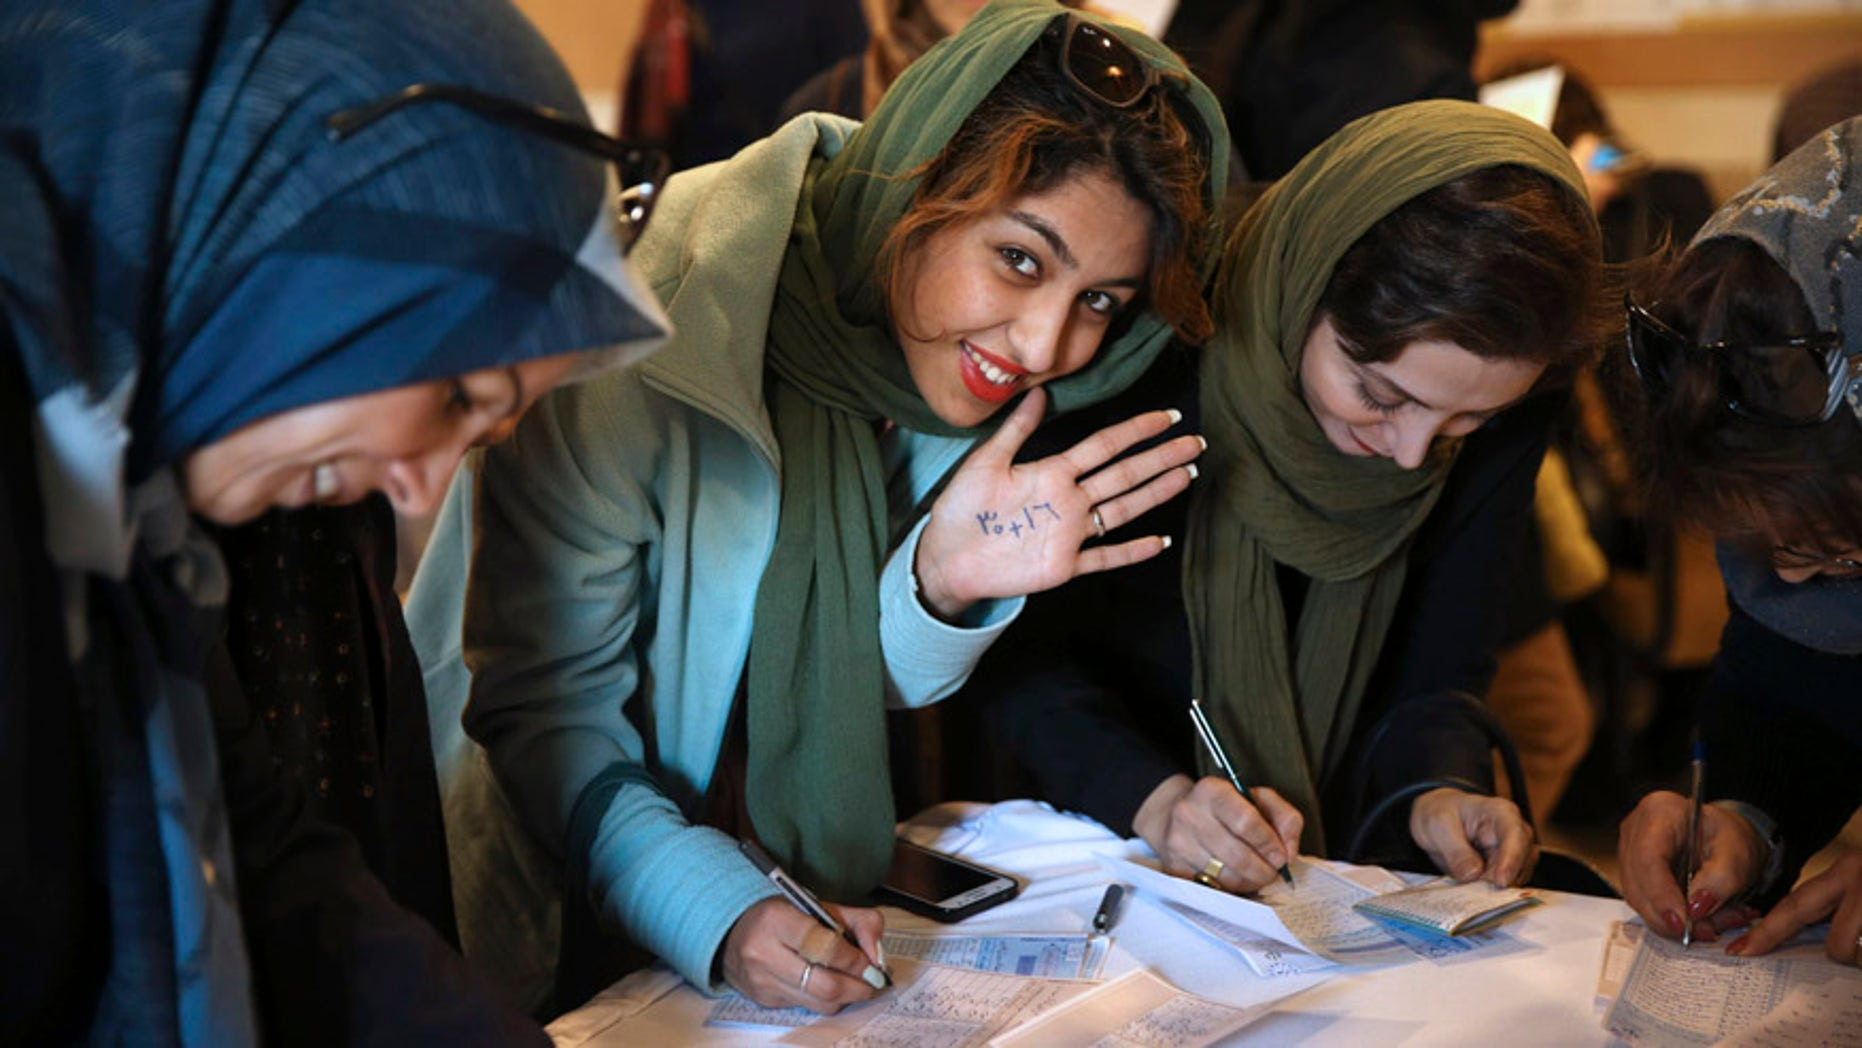 Feb. 26, 2016: An Iranian voter shows her hand with numbers 30+16, a reformists slogan urging people to vote all reformists and moderate candidates in Tehran for both parliament and Assembly of Experts during the elections, as she fills out her ballot in a polling station in Tehran, Iran.